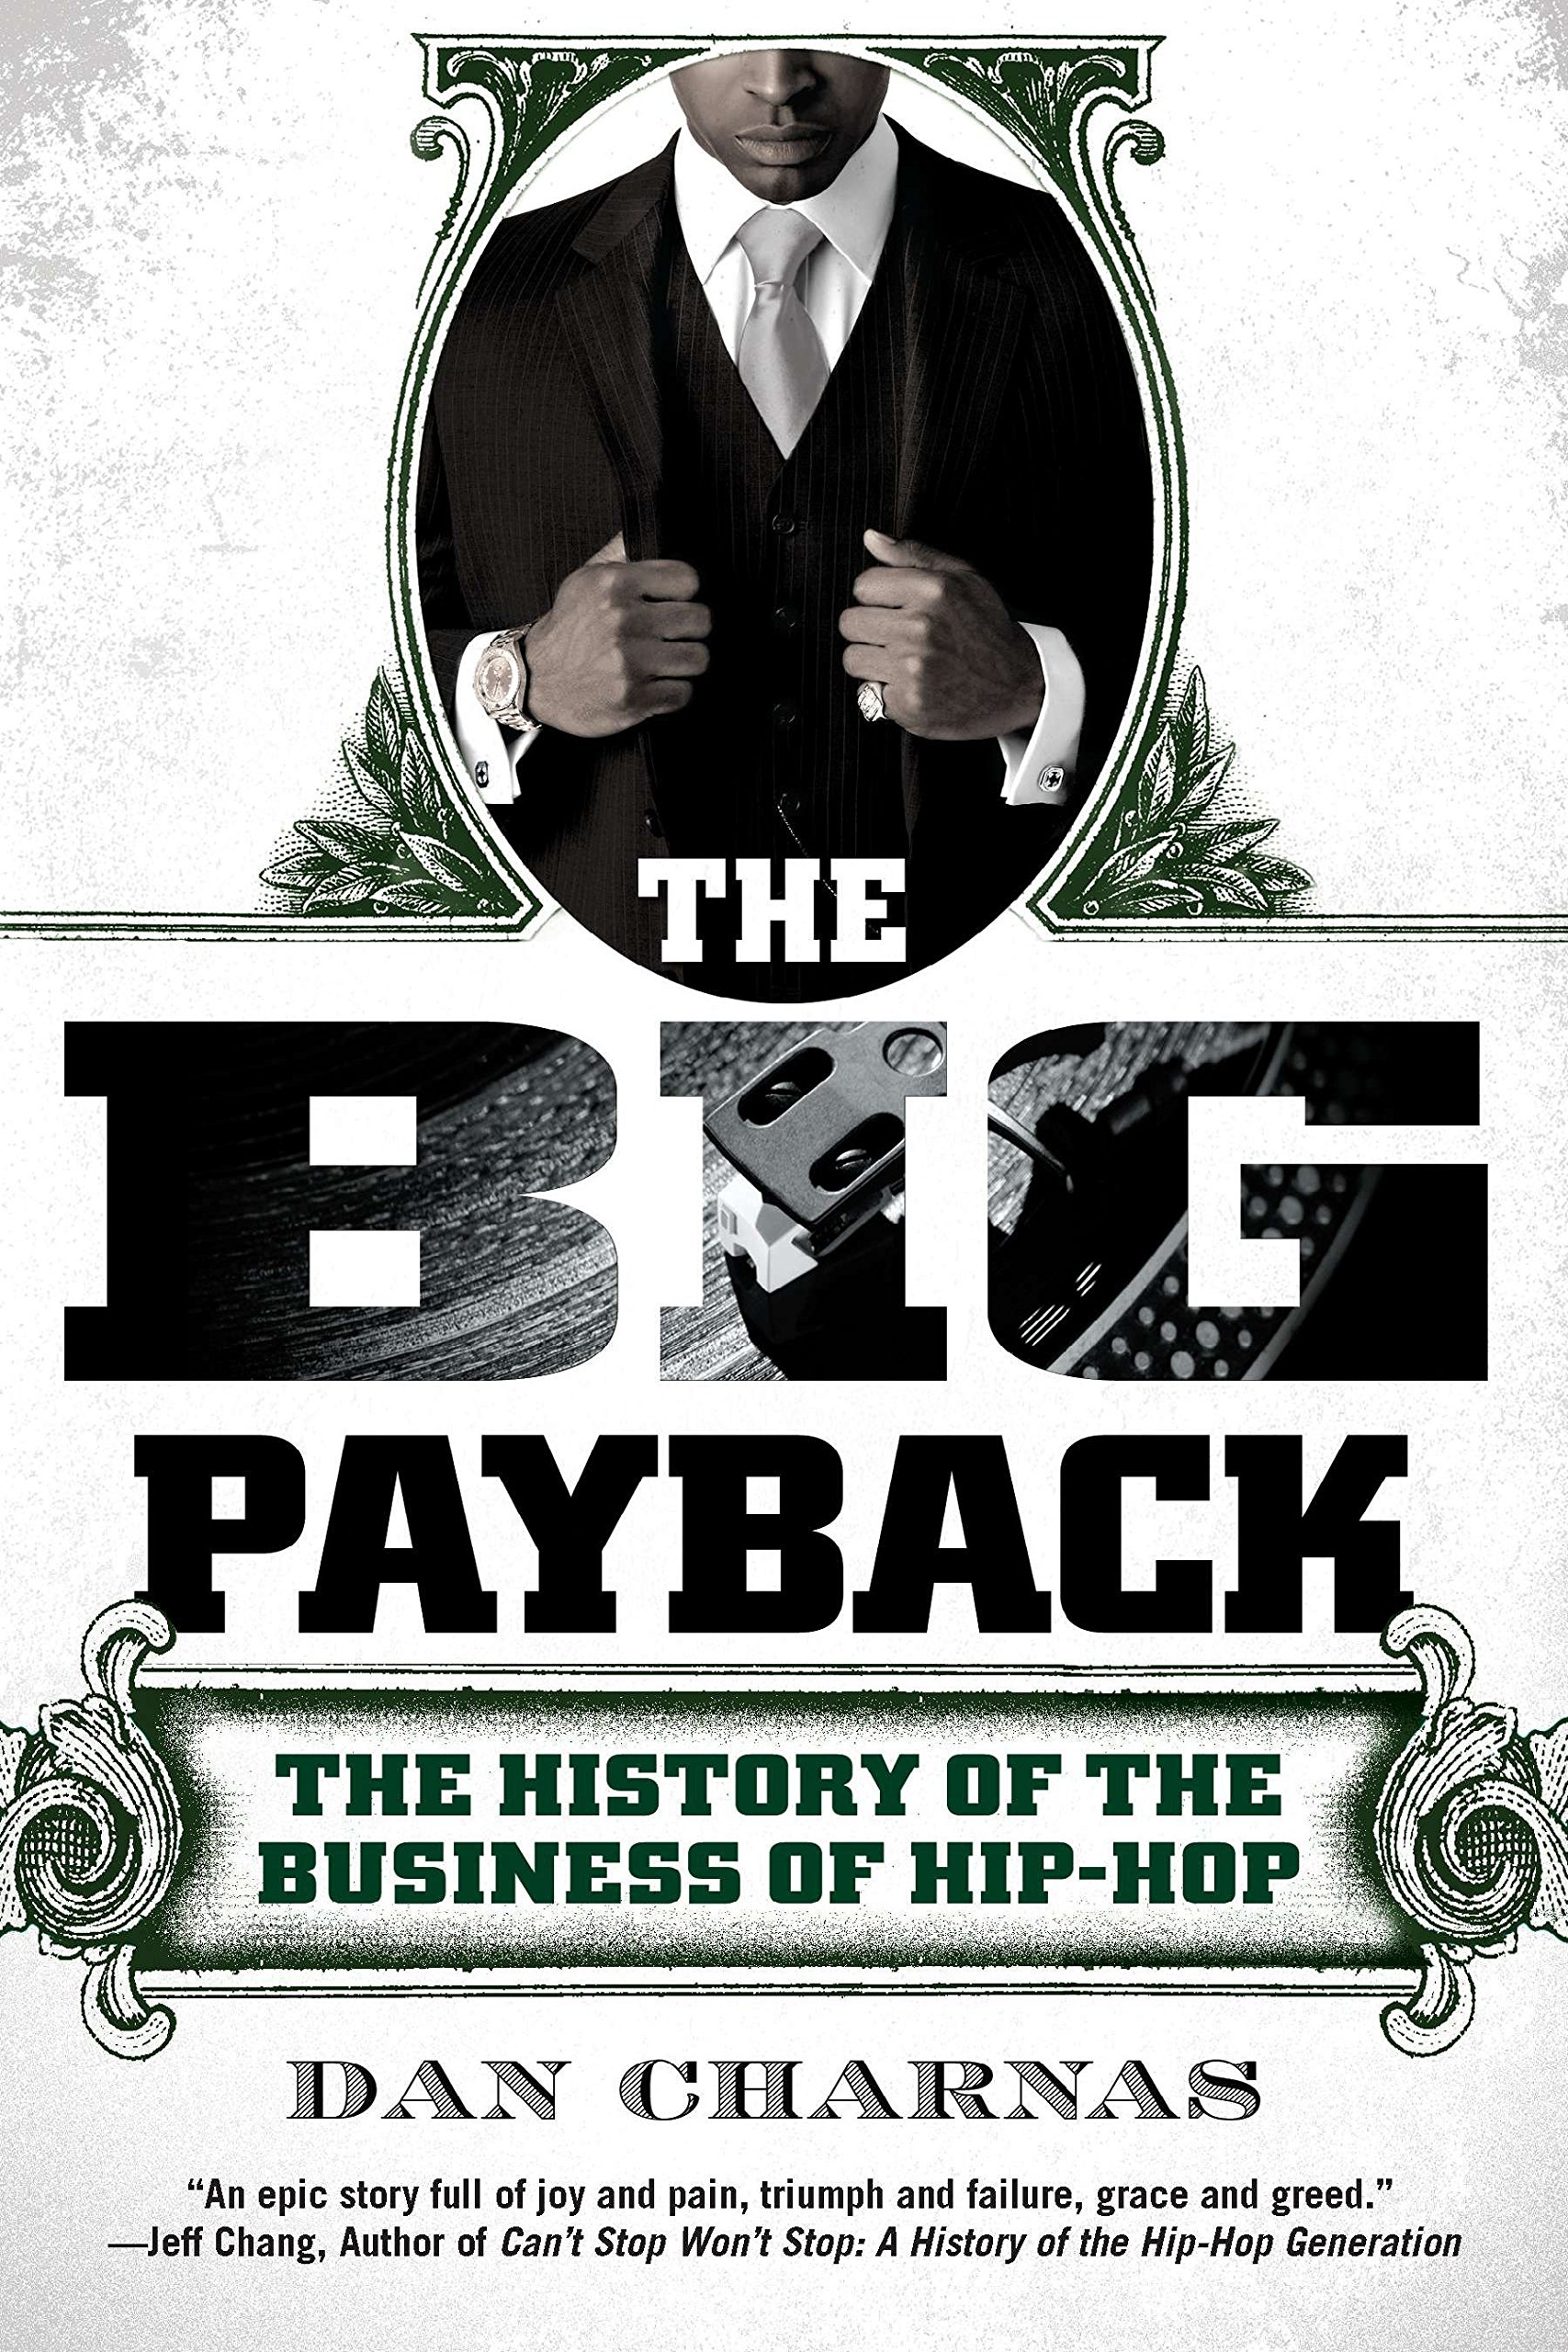 Image OfThe Big Payback: The History Of The Business Of Hip-Hop